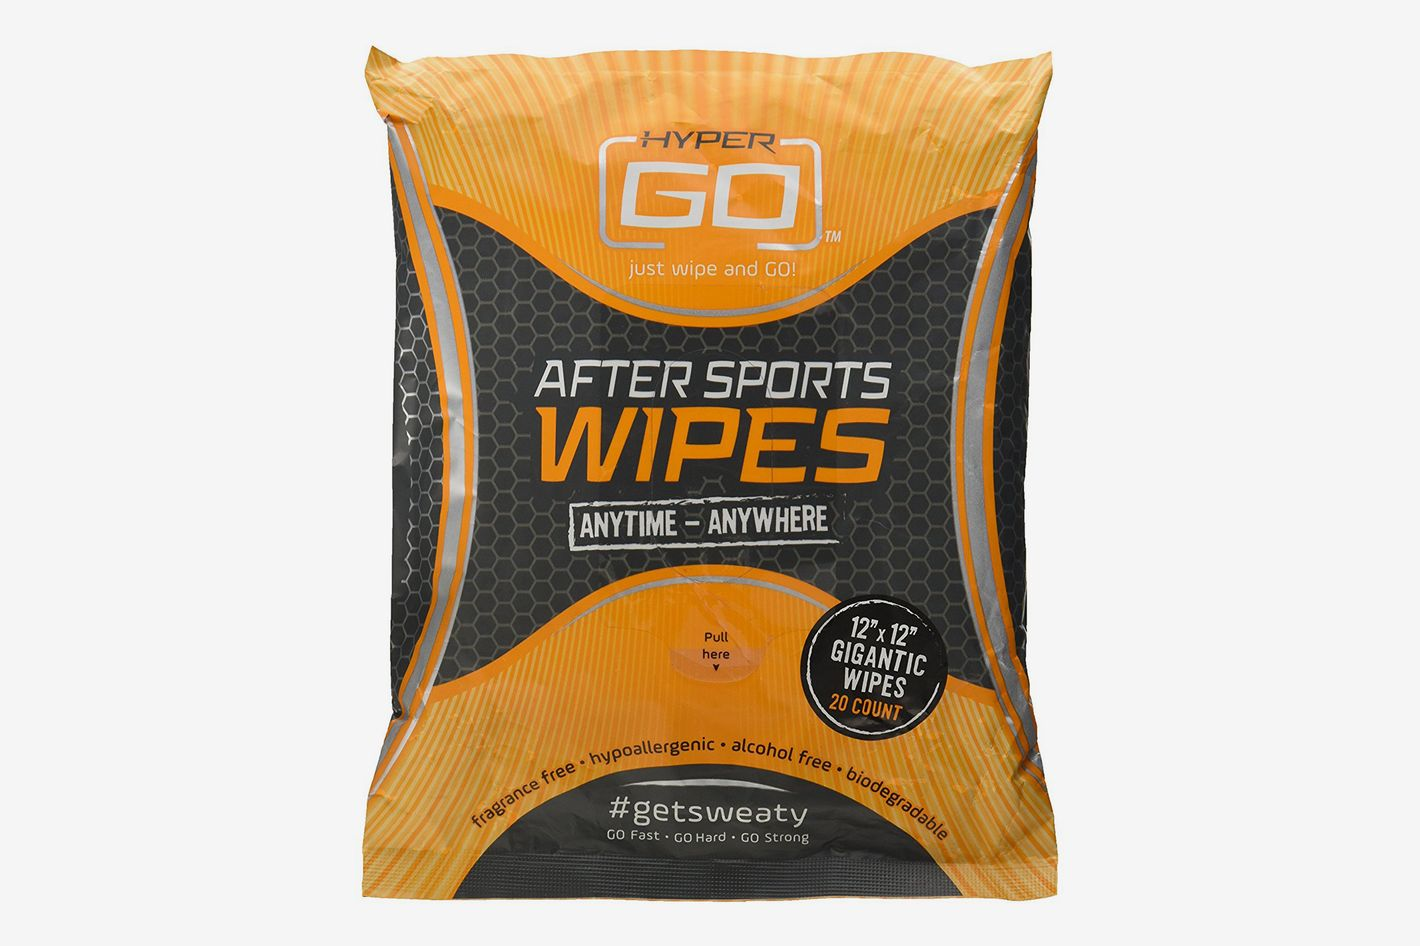 HyperGo After Sports Wipes, Full Body Wipes, 20 Count